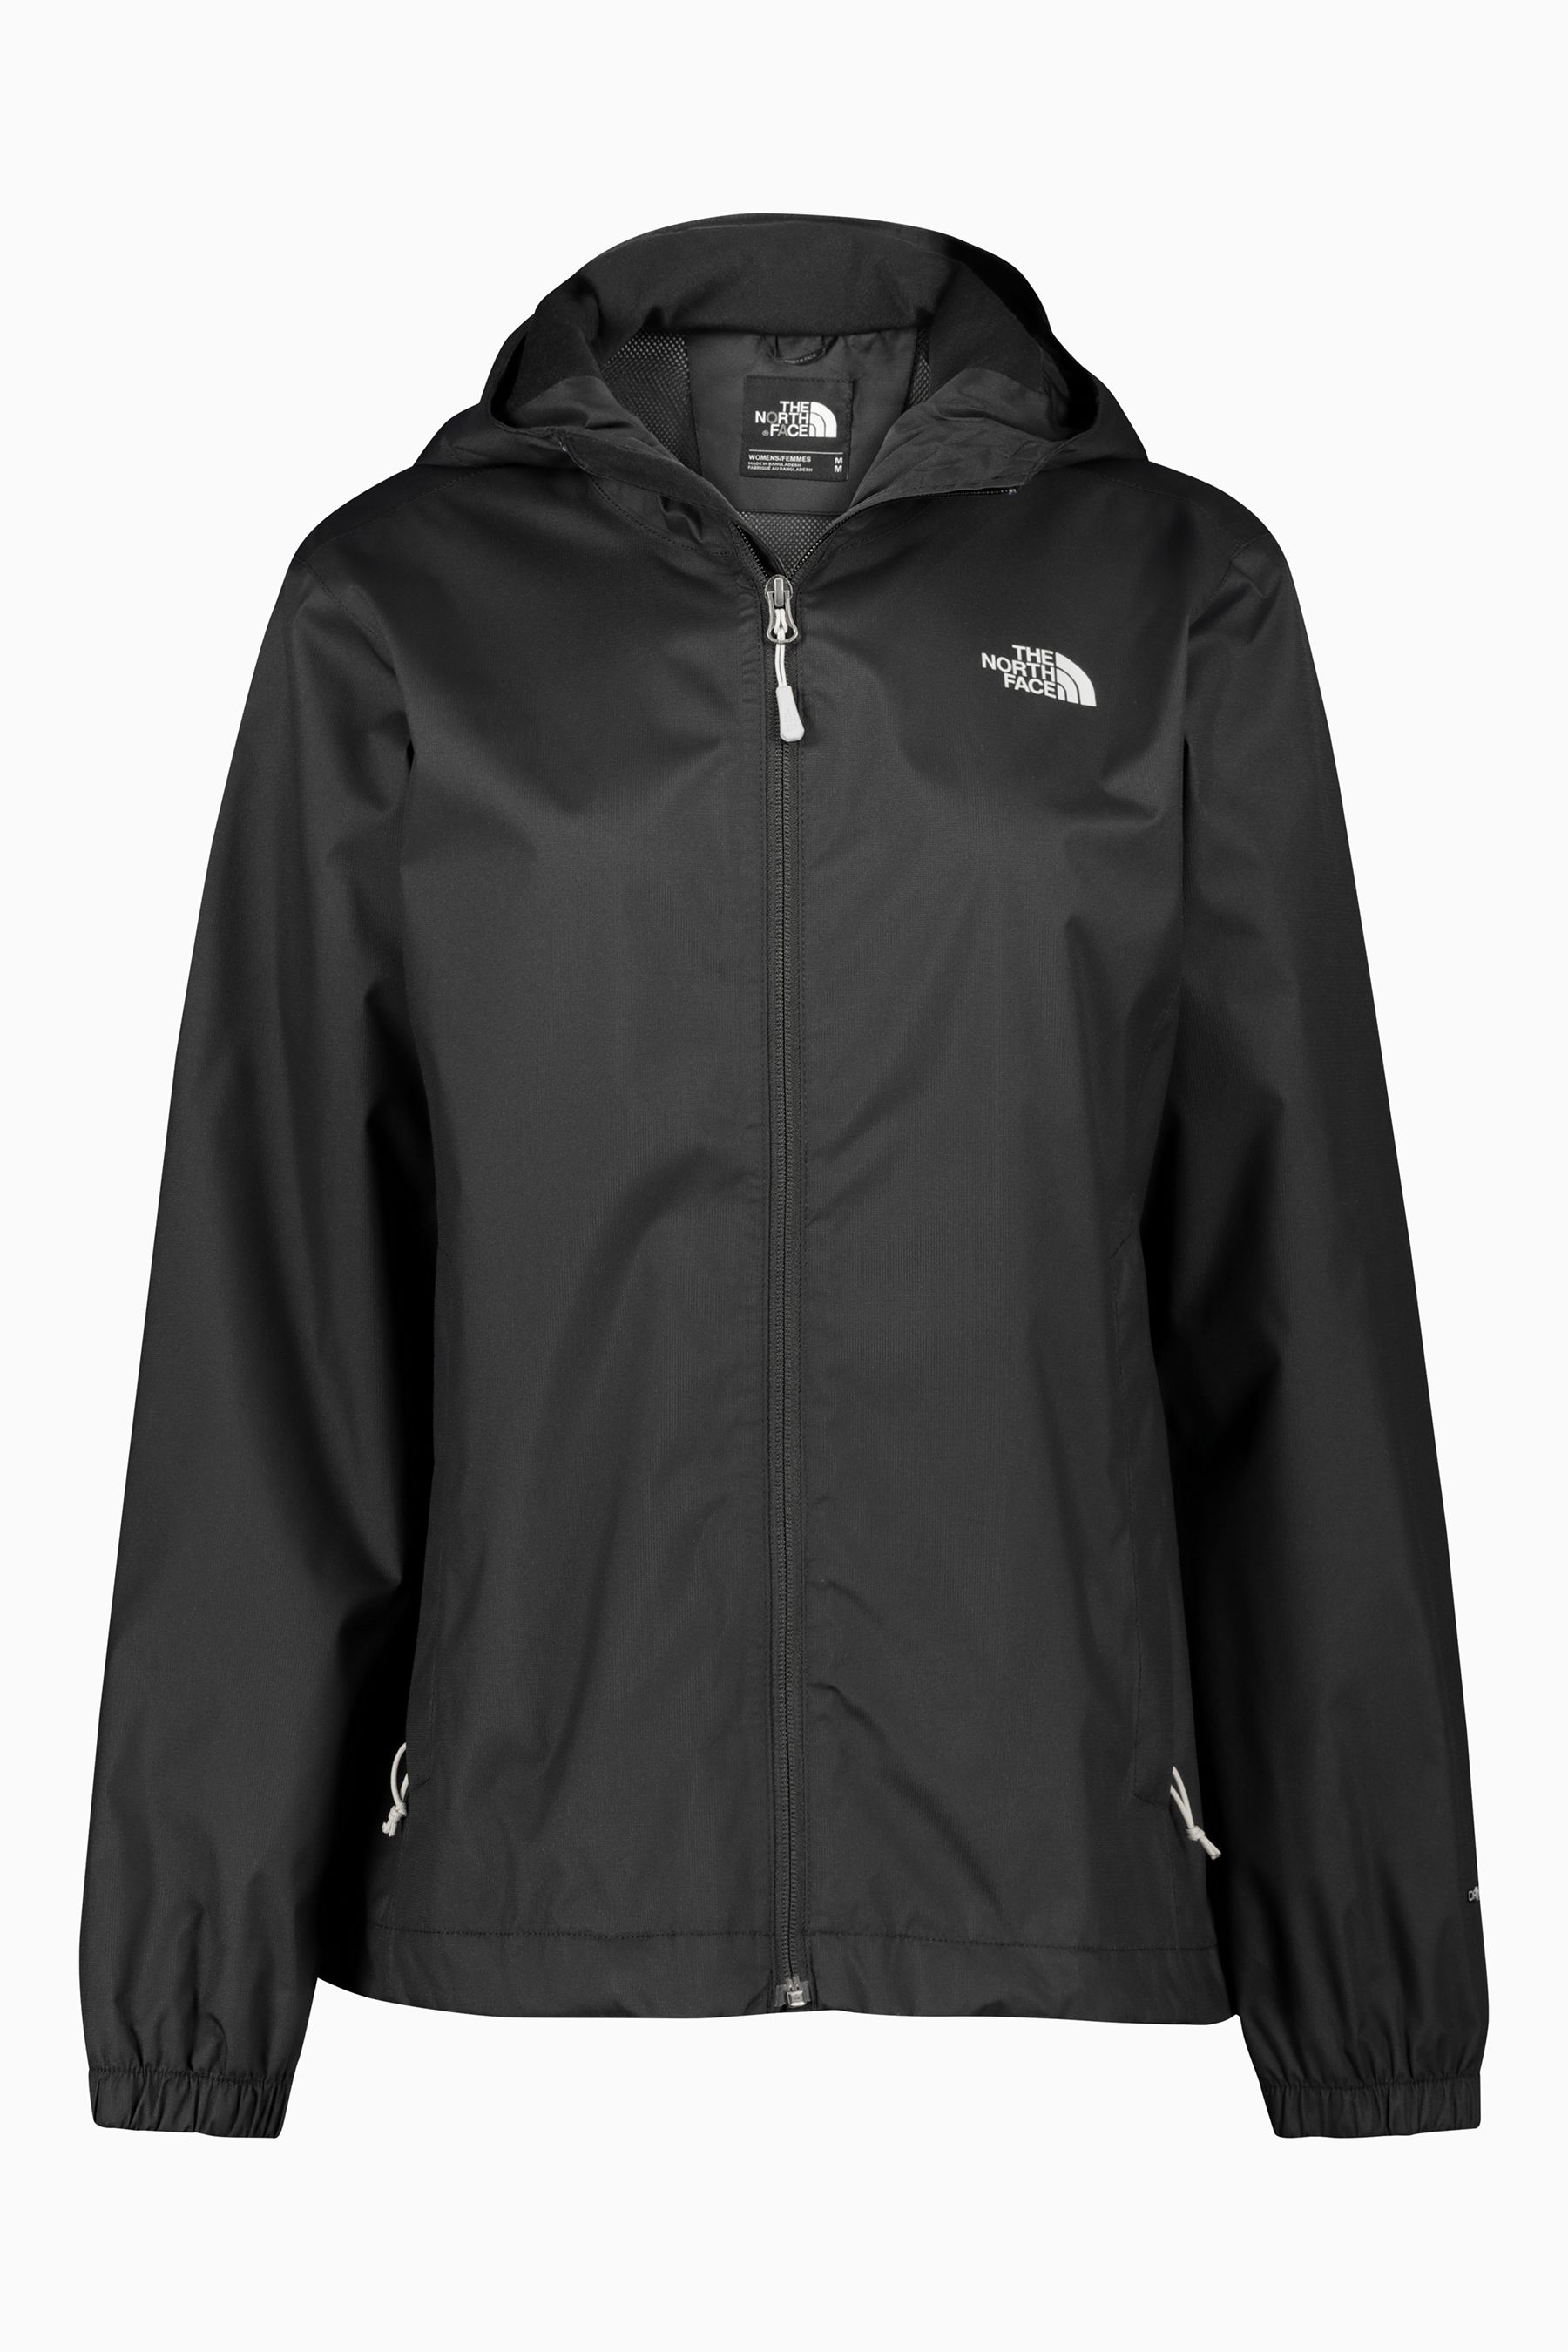 Womens The North Face Quest Jacket Black Jackets The North Face Fashion